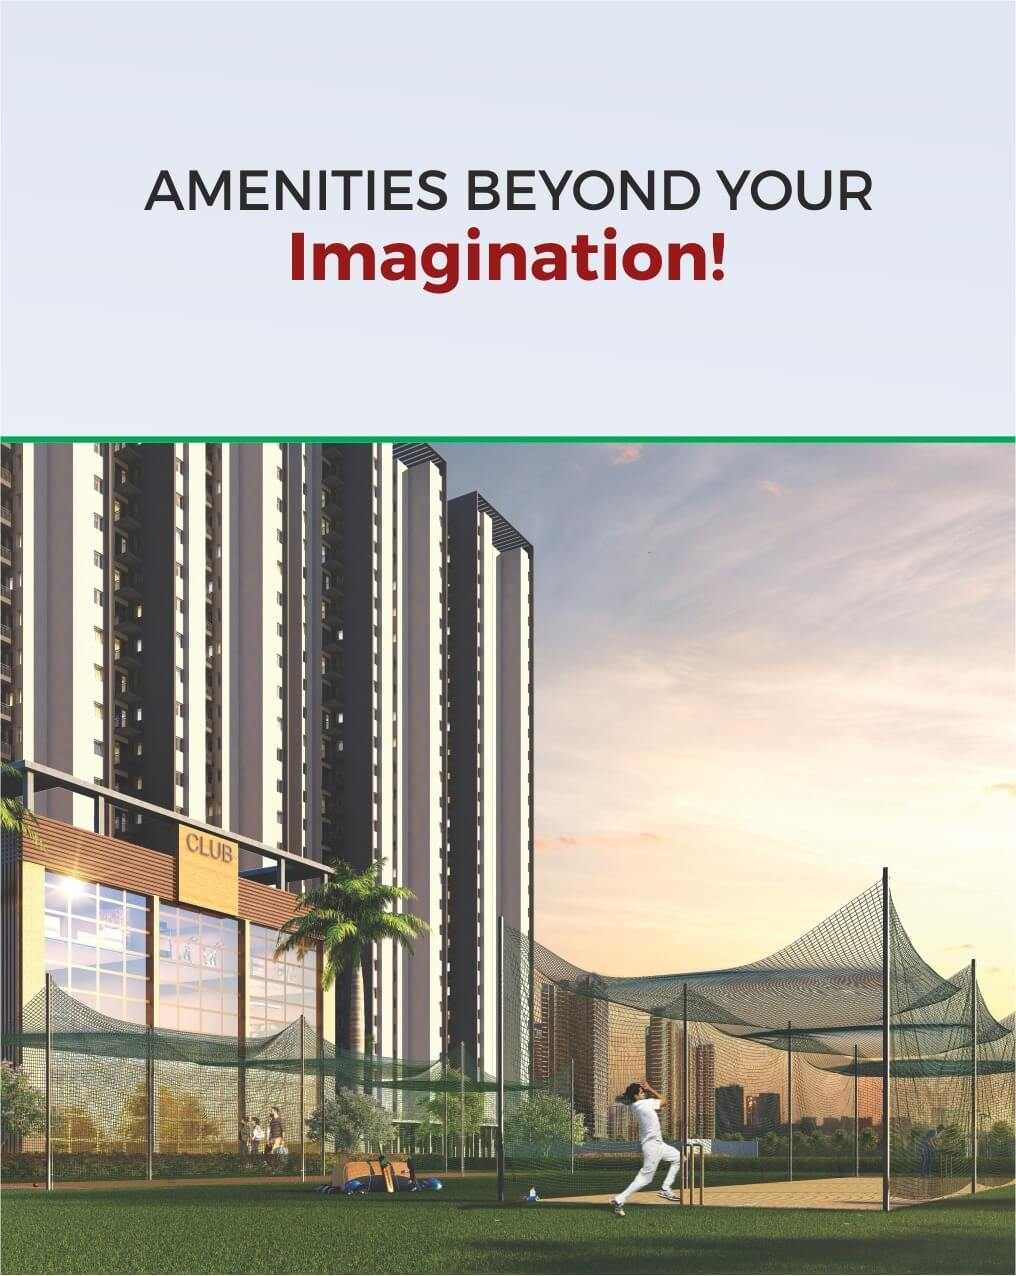 Amenities Beyond Your Imagination!